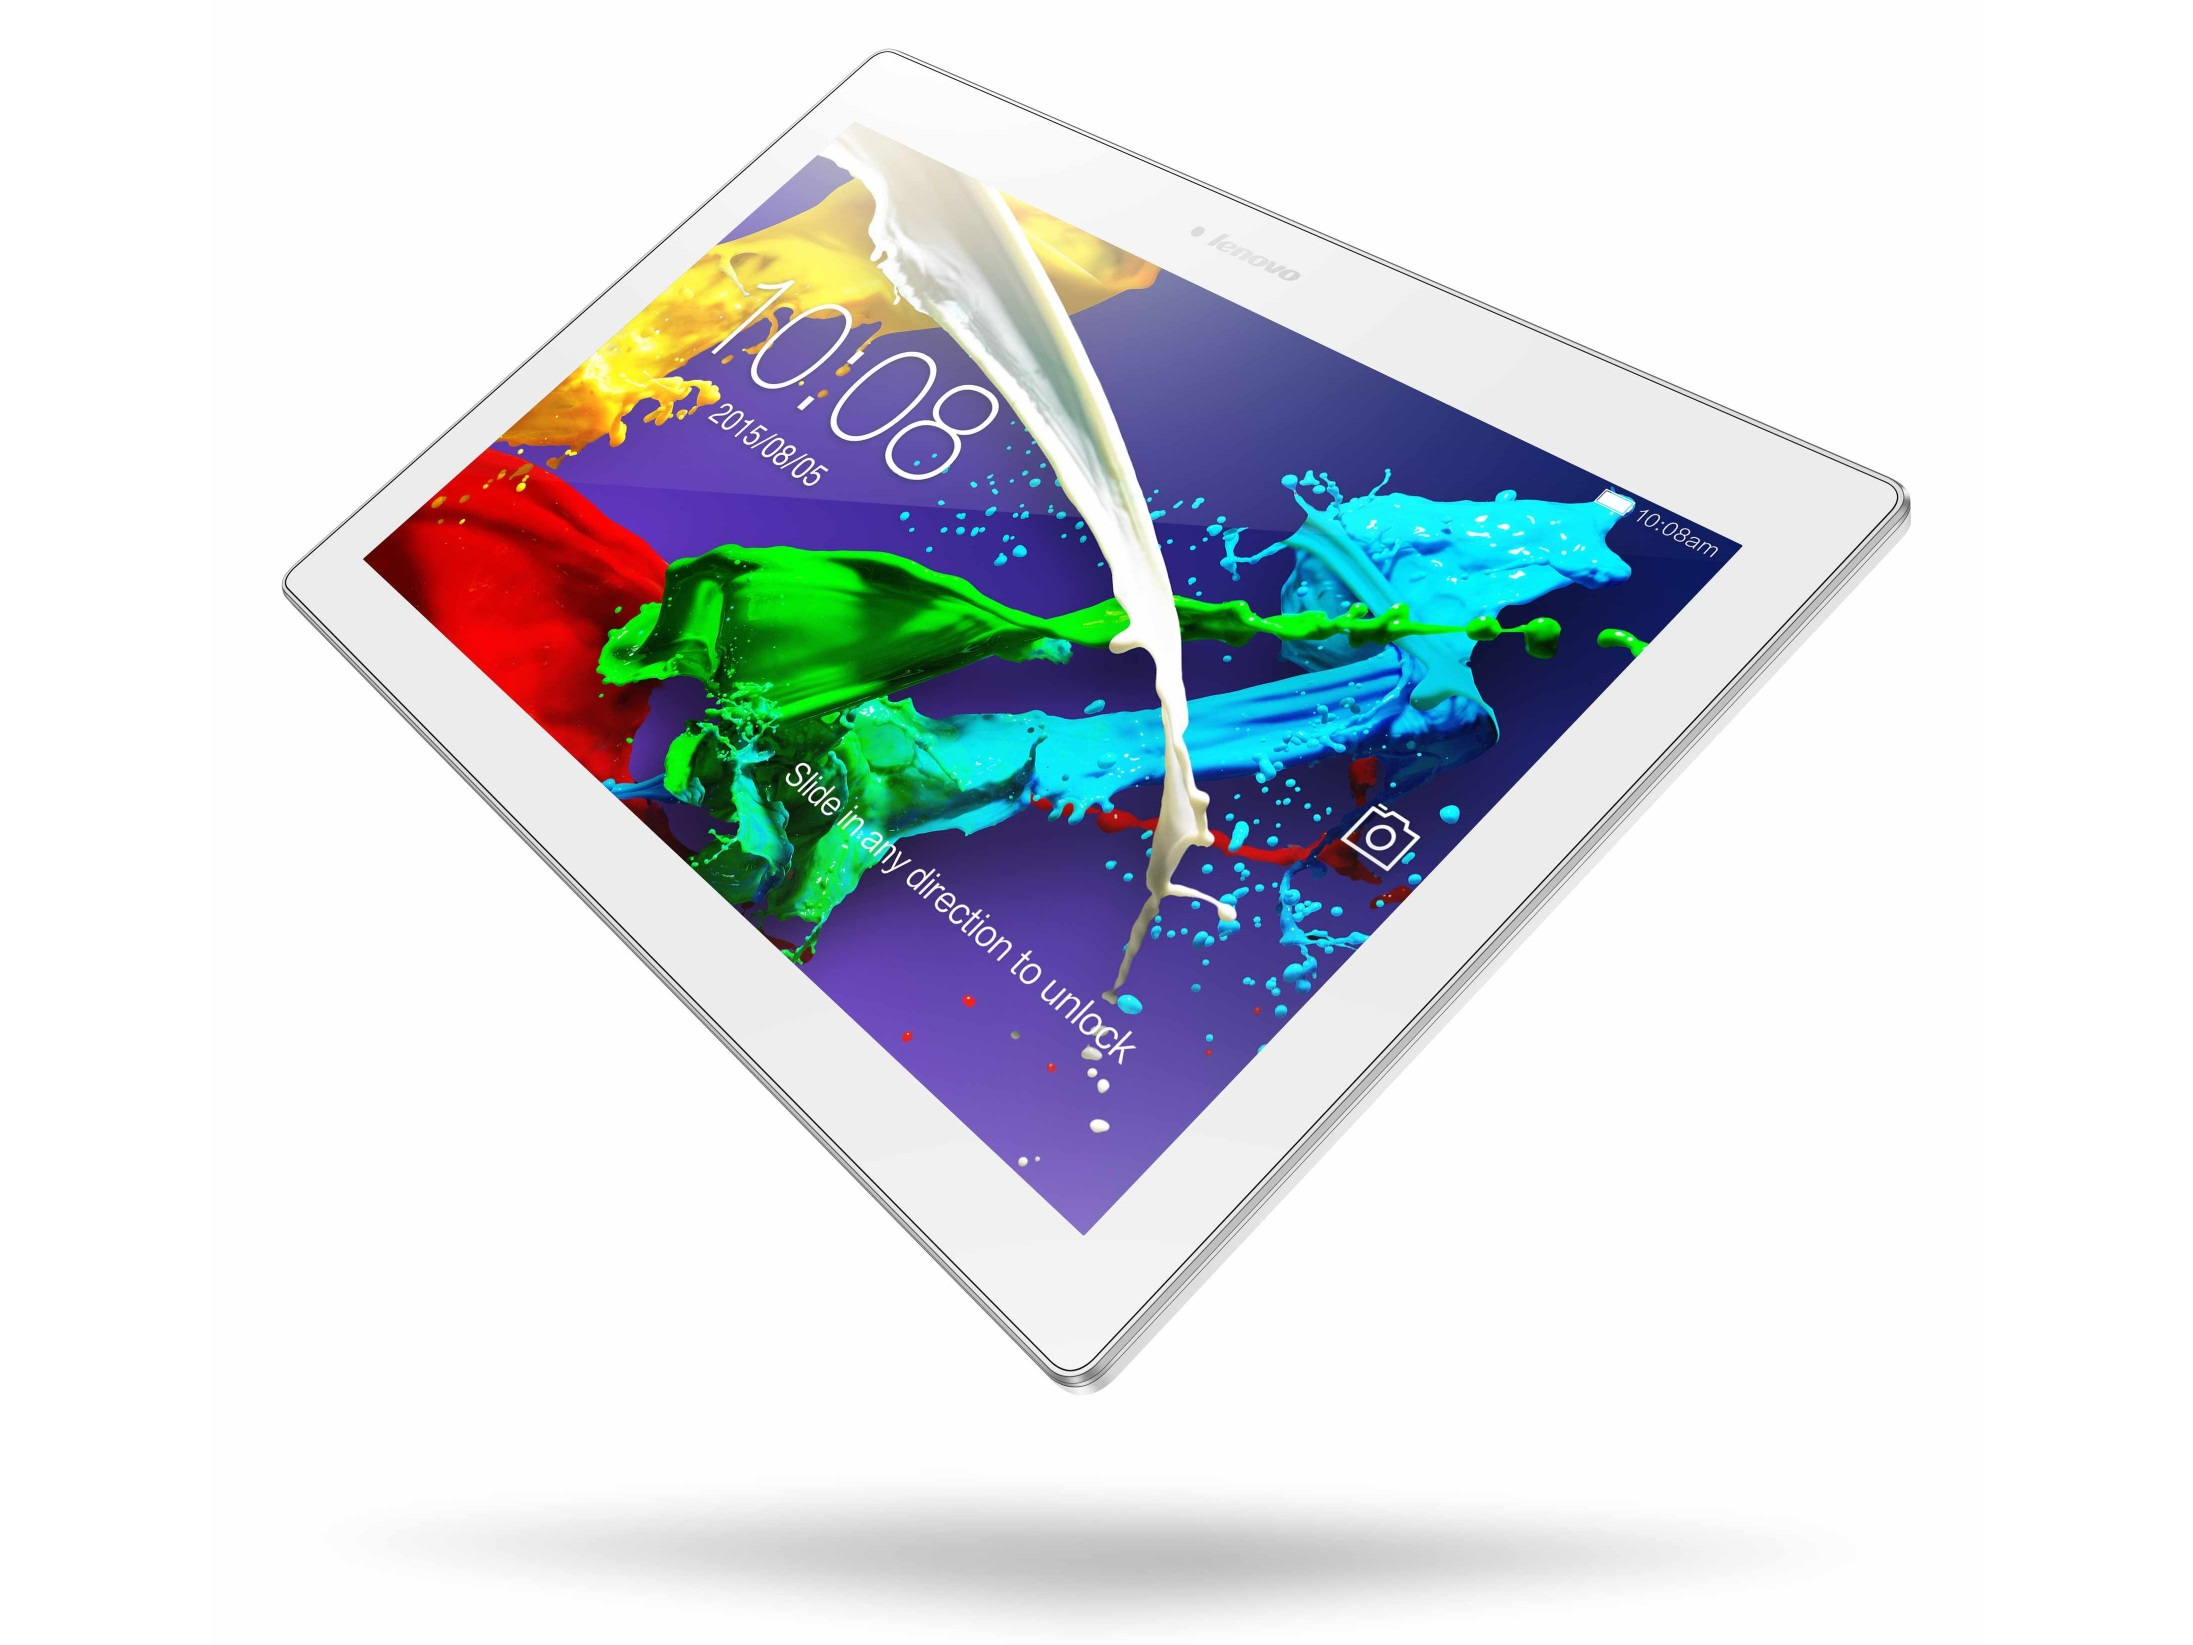 Lenovo TAB 2 A10 images and specs 2